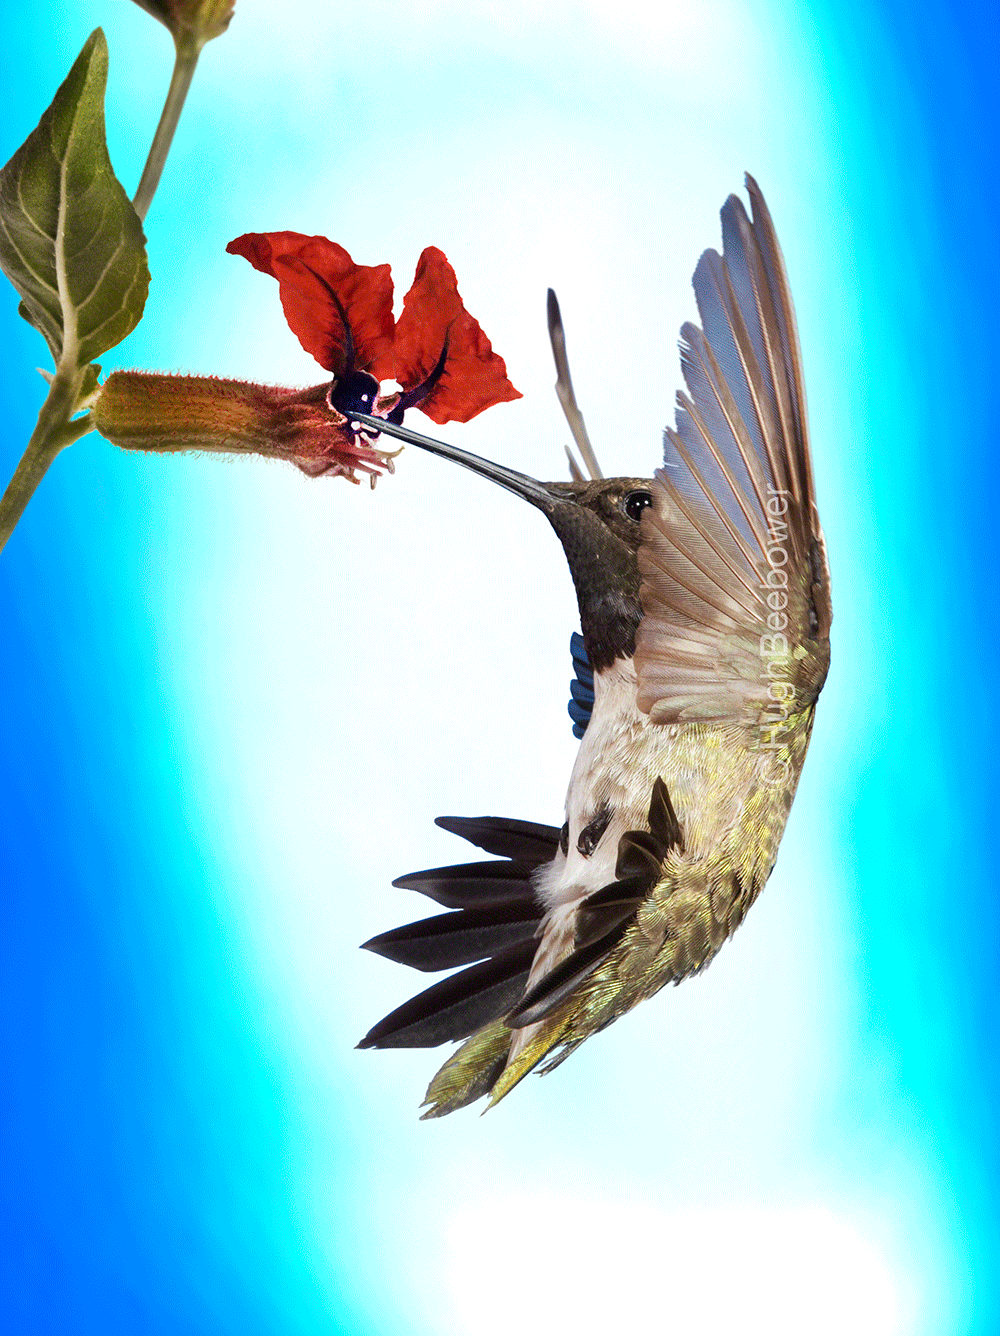 Black-Chinned Hummingbird at Cuphea Bloom | Beebower Productions